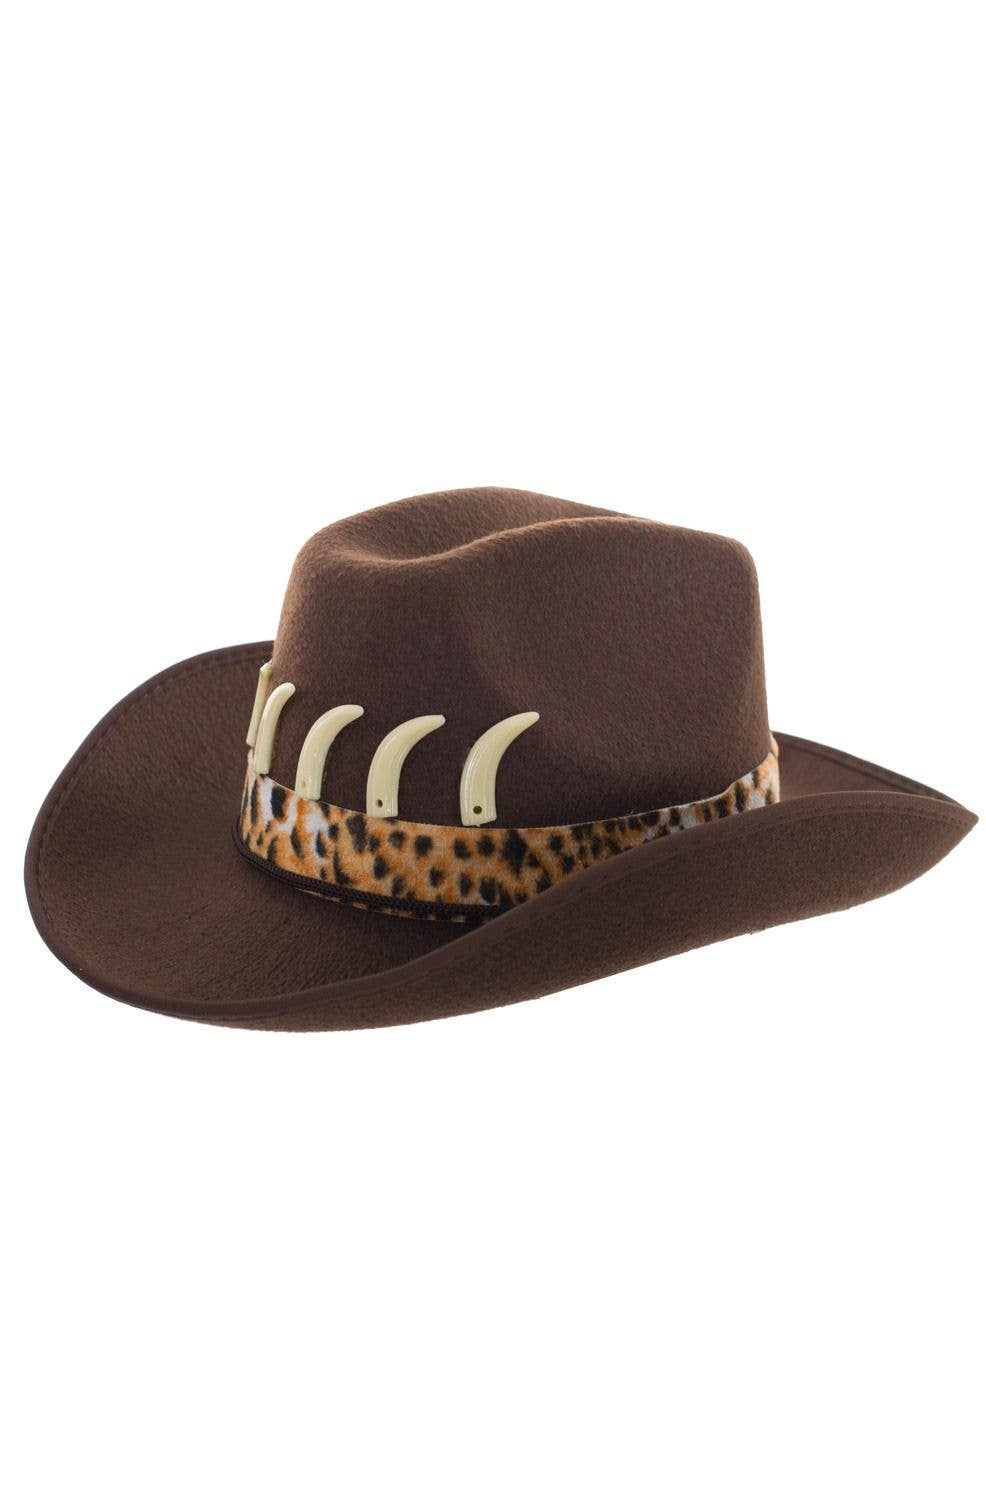 32225a8469e Adult s Brown Crocodile Dundee Outback Hunter Hat View 2